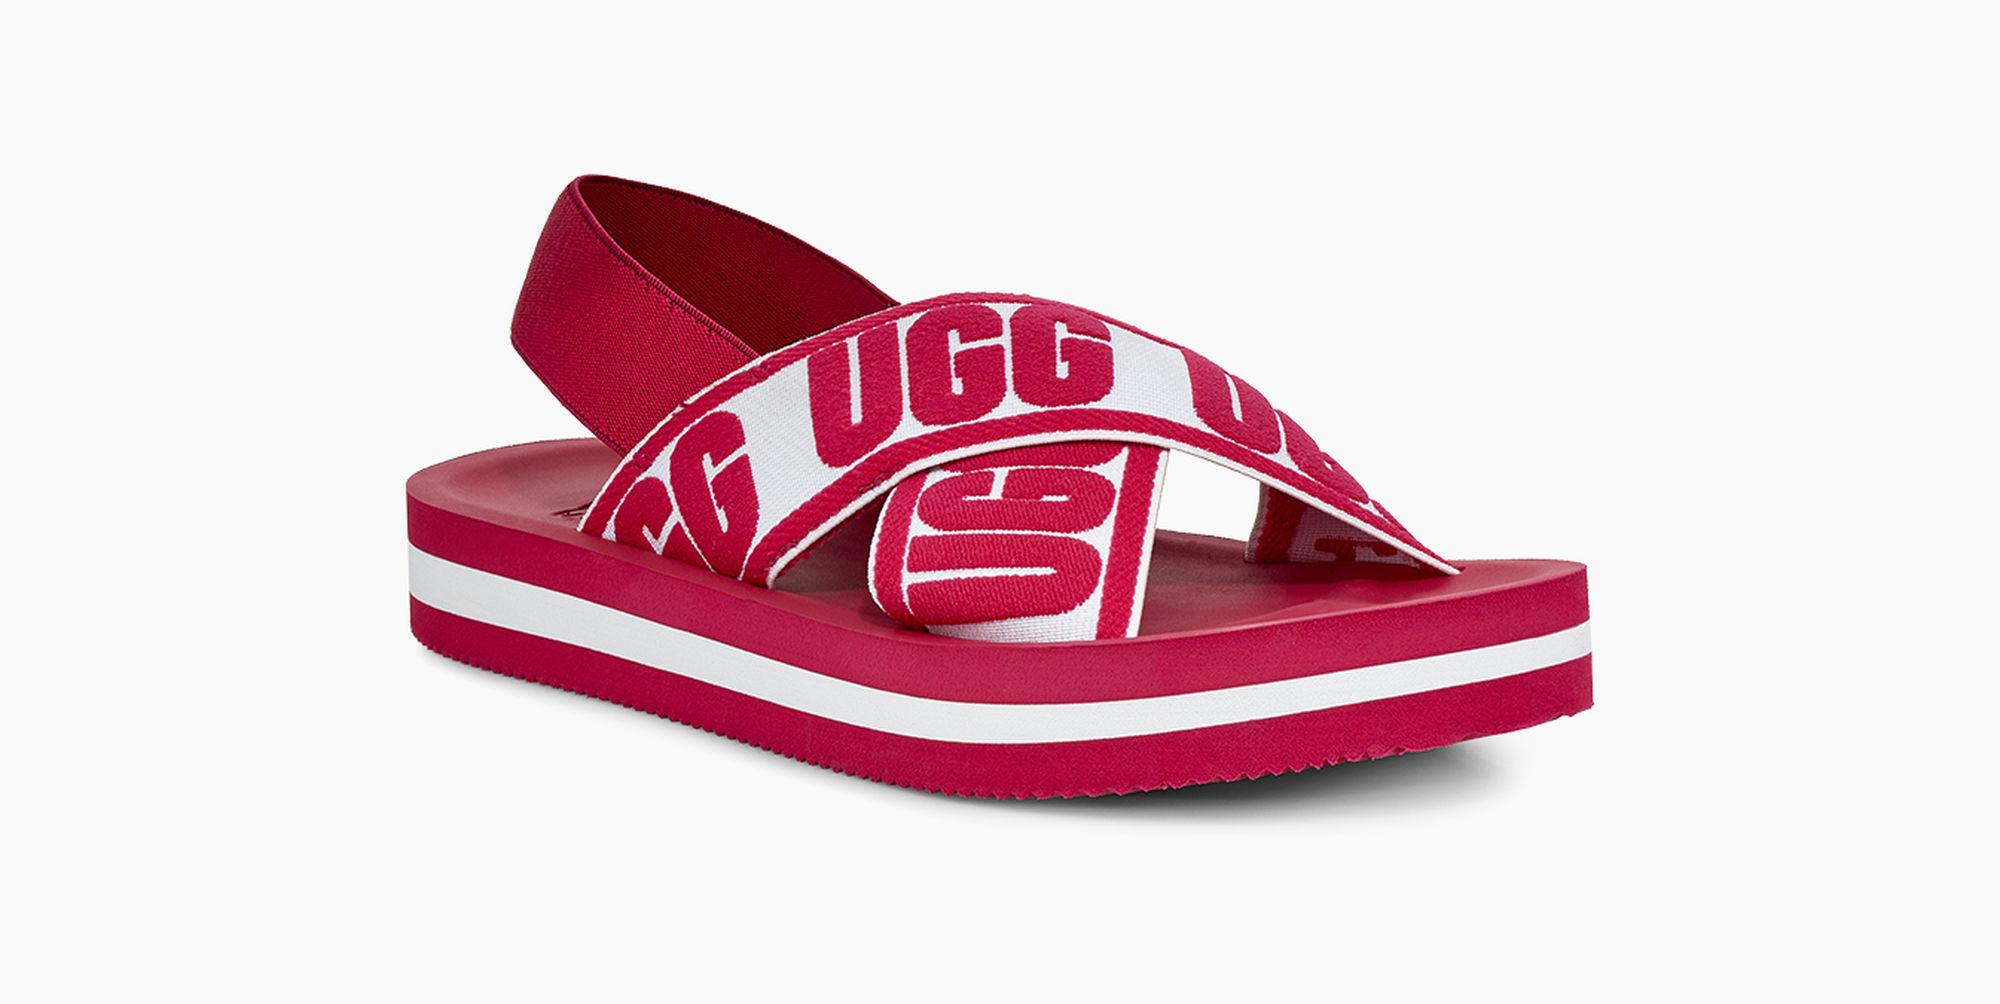 ede854ce3e6c Ugg - Red Women s Marmont Graphic Sandal - Lyst. View fullscreen